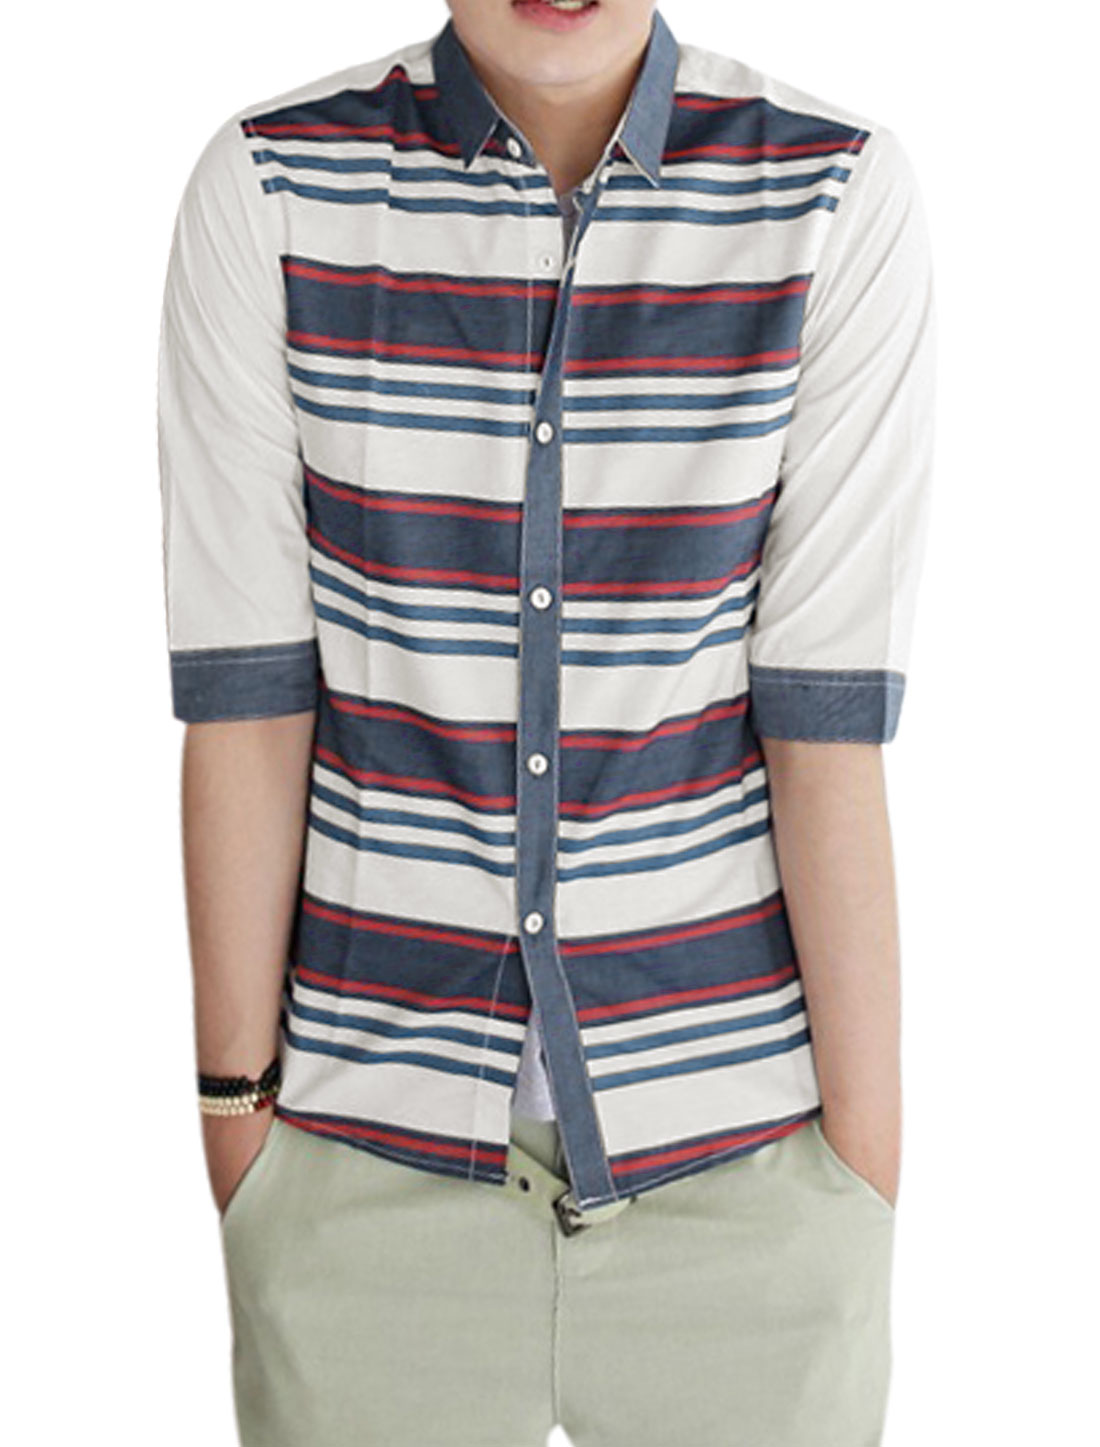 Men Point Collar Single Breasted Stripes Buttoned Cuffs Shirt White Red S